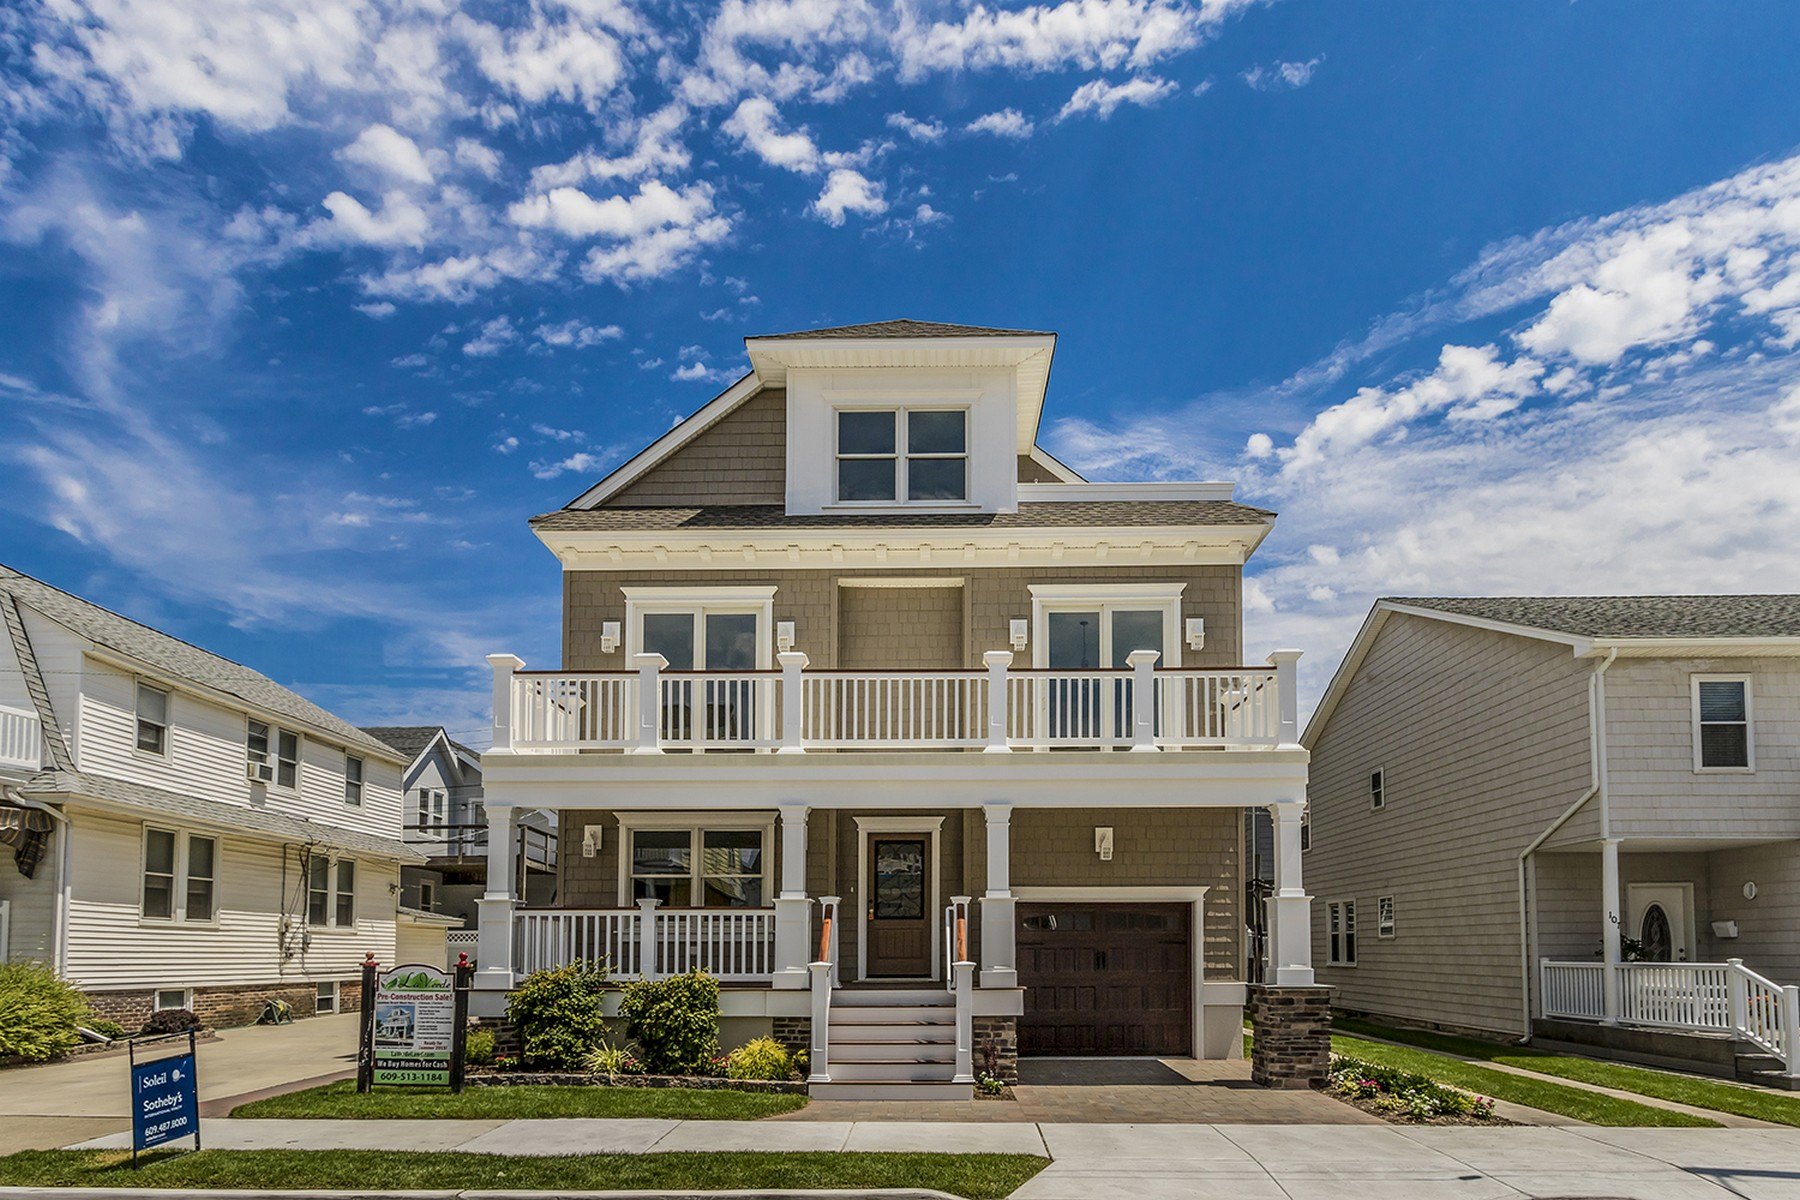 Single Family Home for Sale at 105 S Troy Ave. Ventnor, New Jersey, 08406 United States